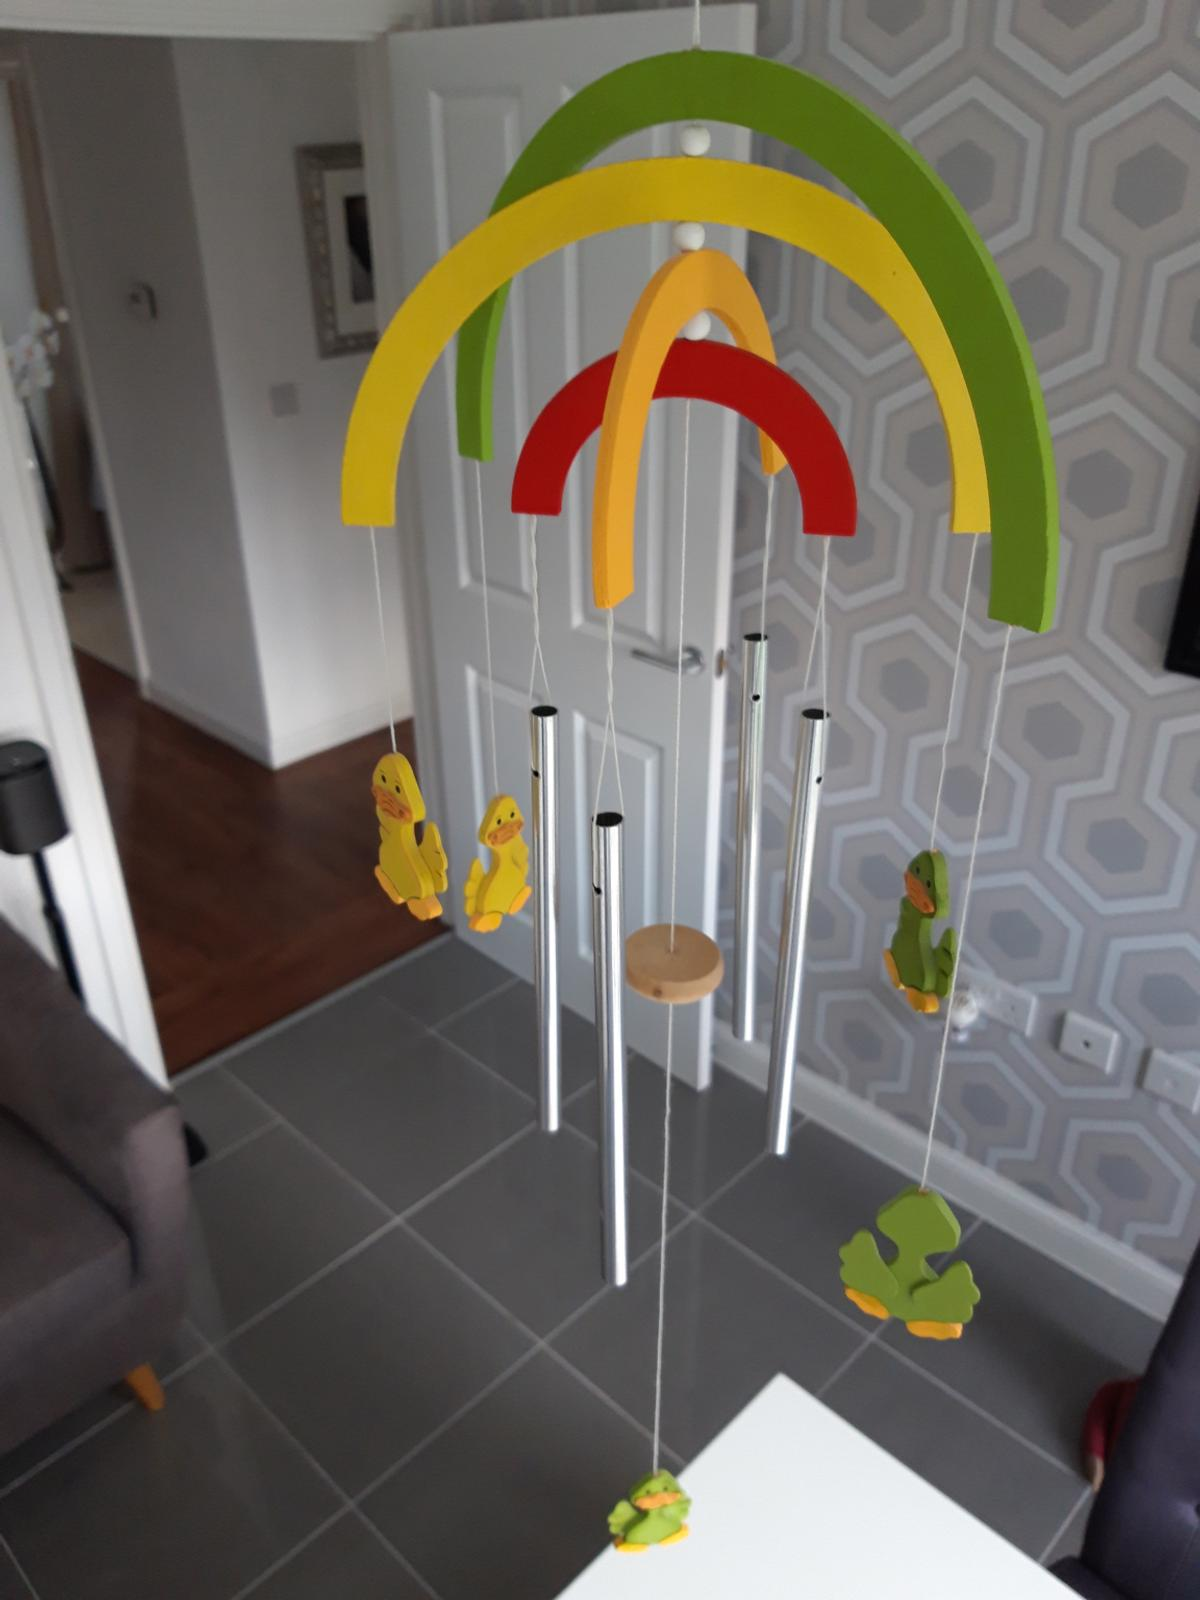 Rainbow baby cot mobile with ducks and chime bars